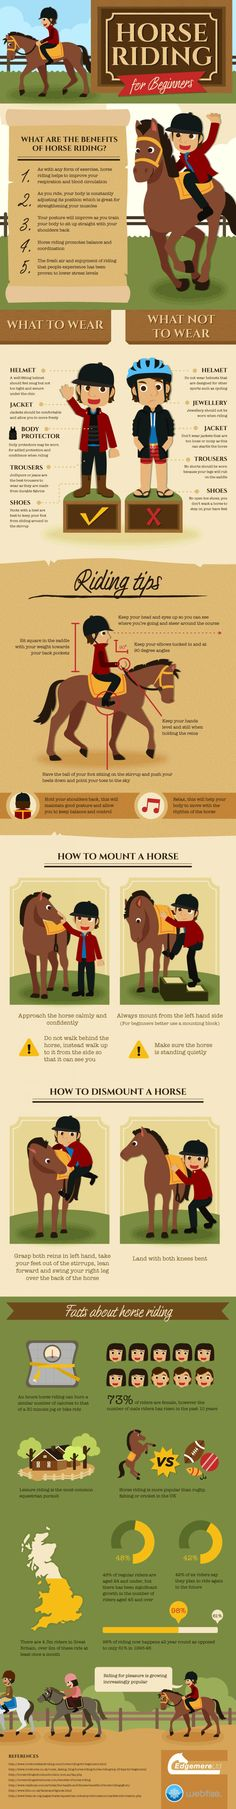 Horse Riding For Beginners | Visual.ly